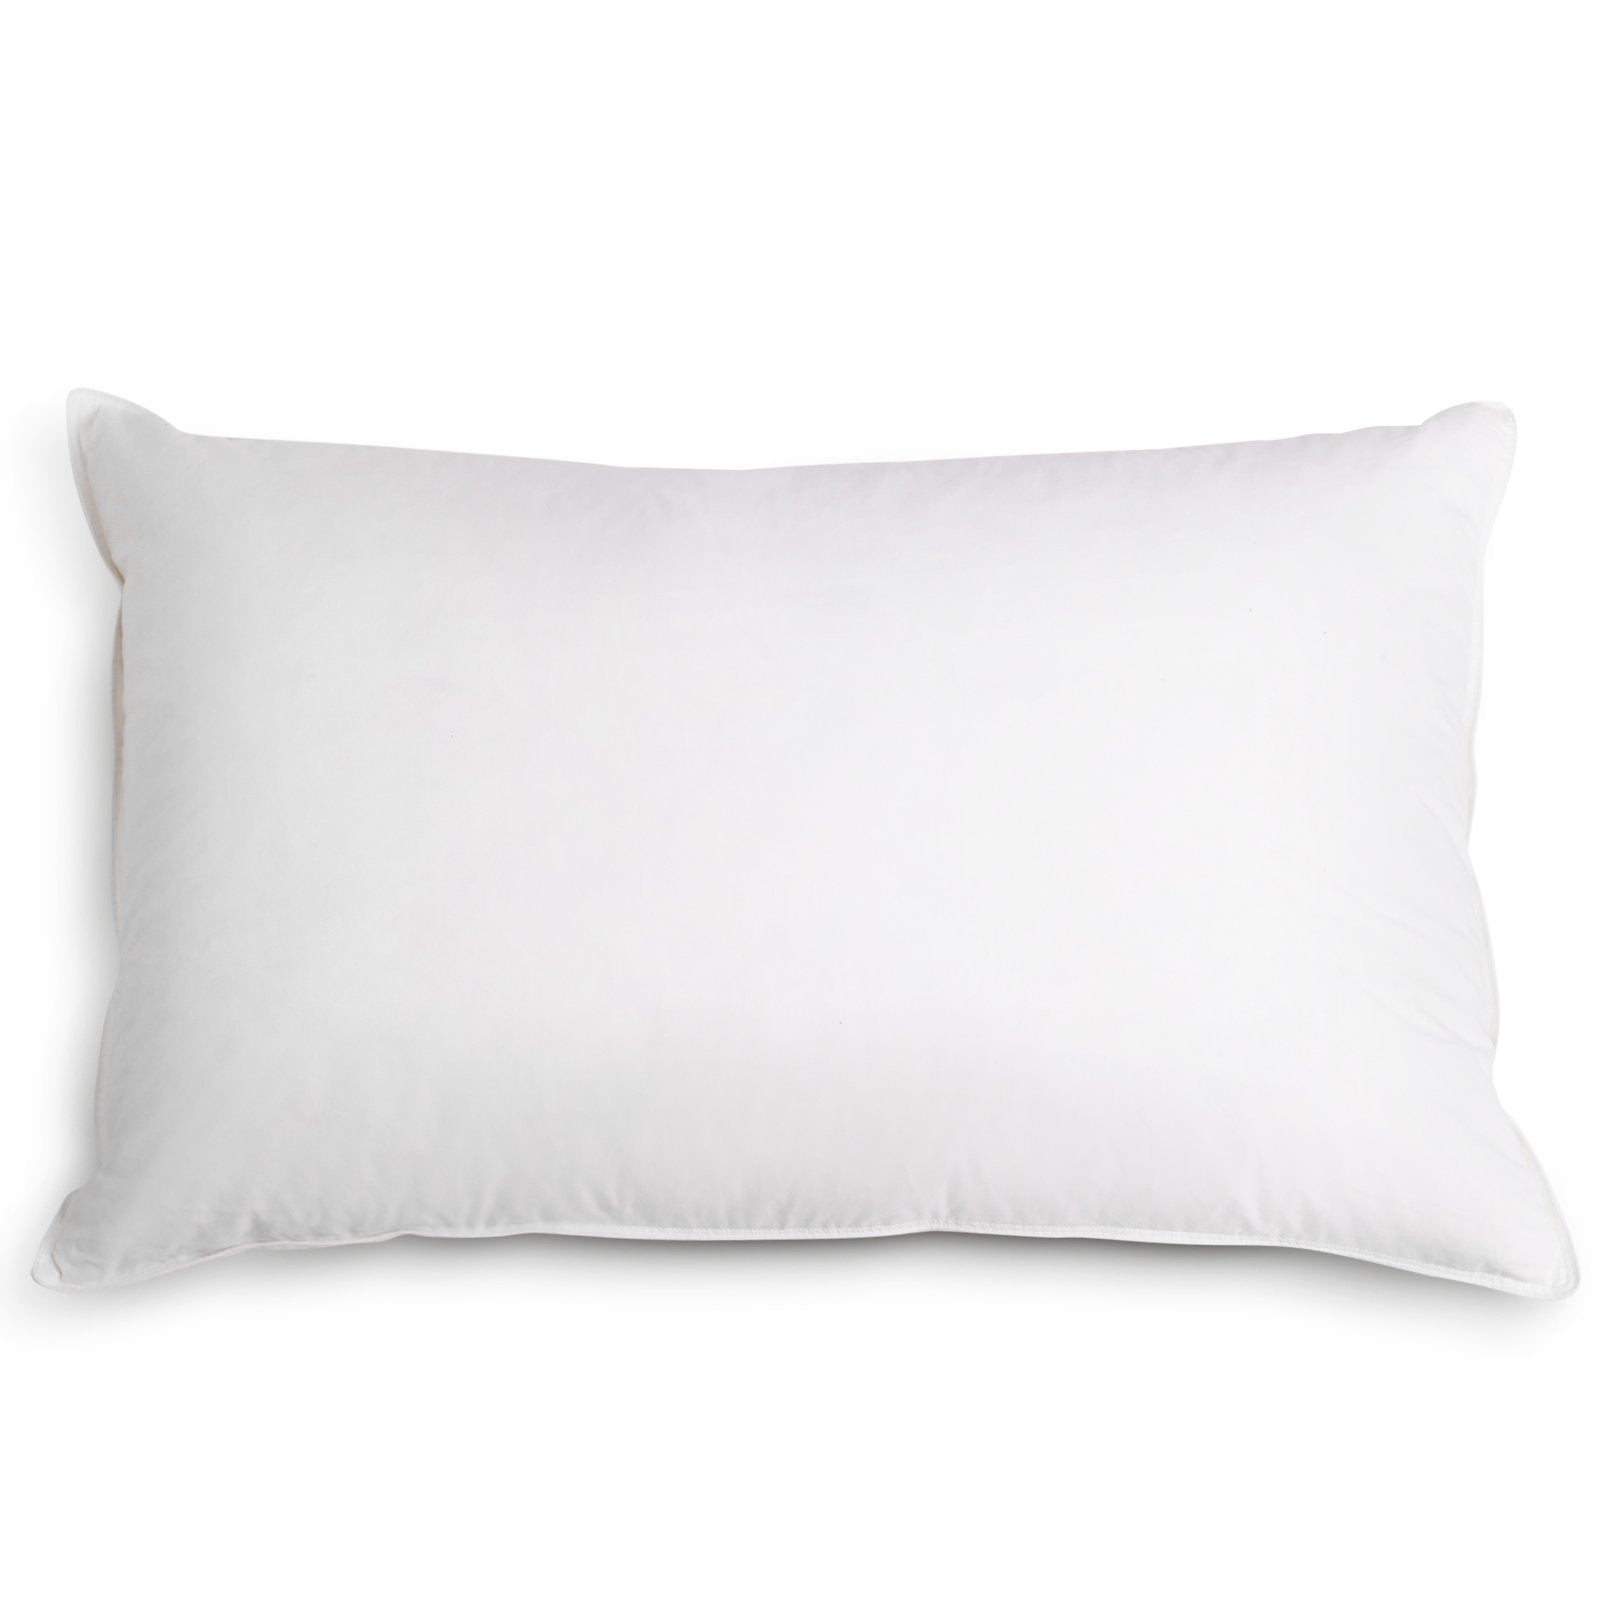 Giselle Bedding Set of 4 Medium Cotton Pillows - Evopia